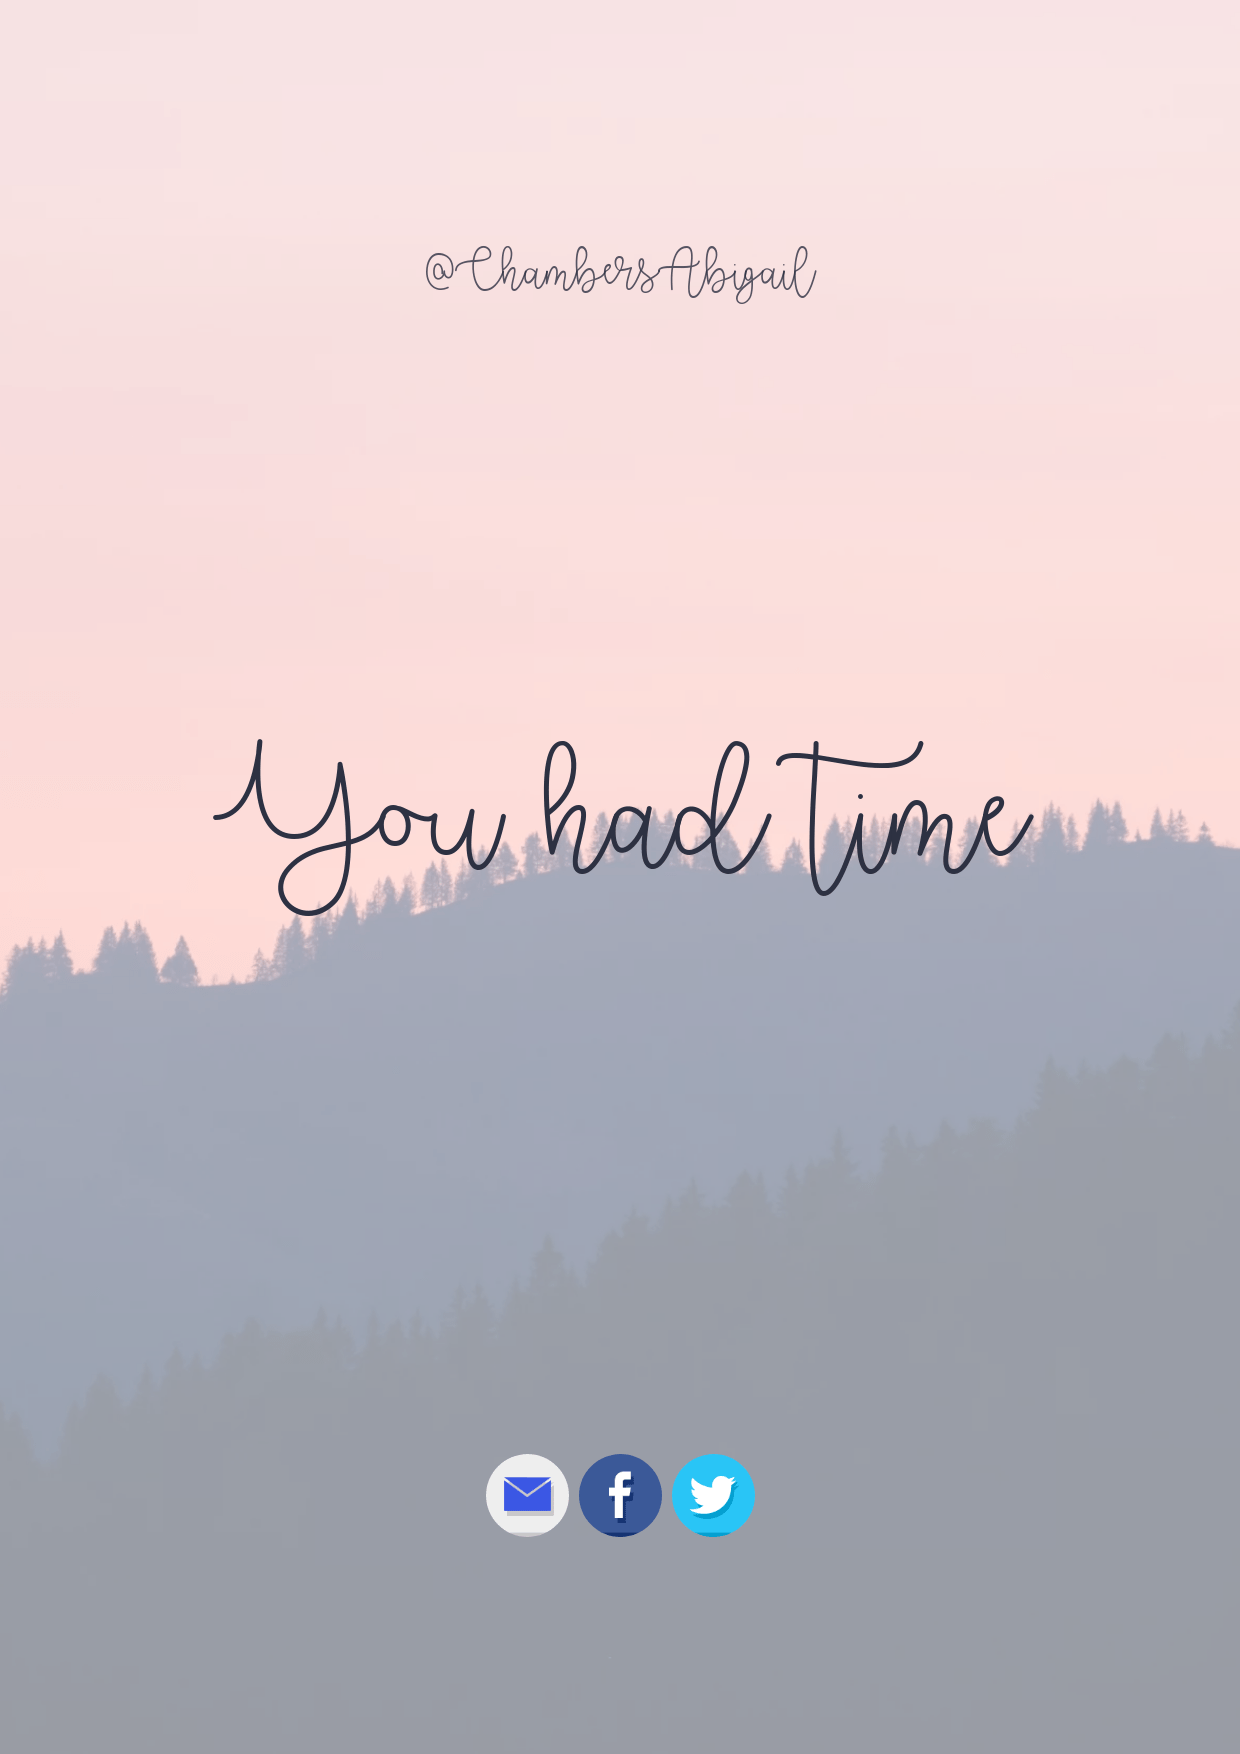 Sky, Text, Font, Atmosphere, Computer, Wallpaper, Morning, Cloud, Line, Graphics, Handwriting, Silhouetted, Against,  Free Image